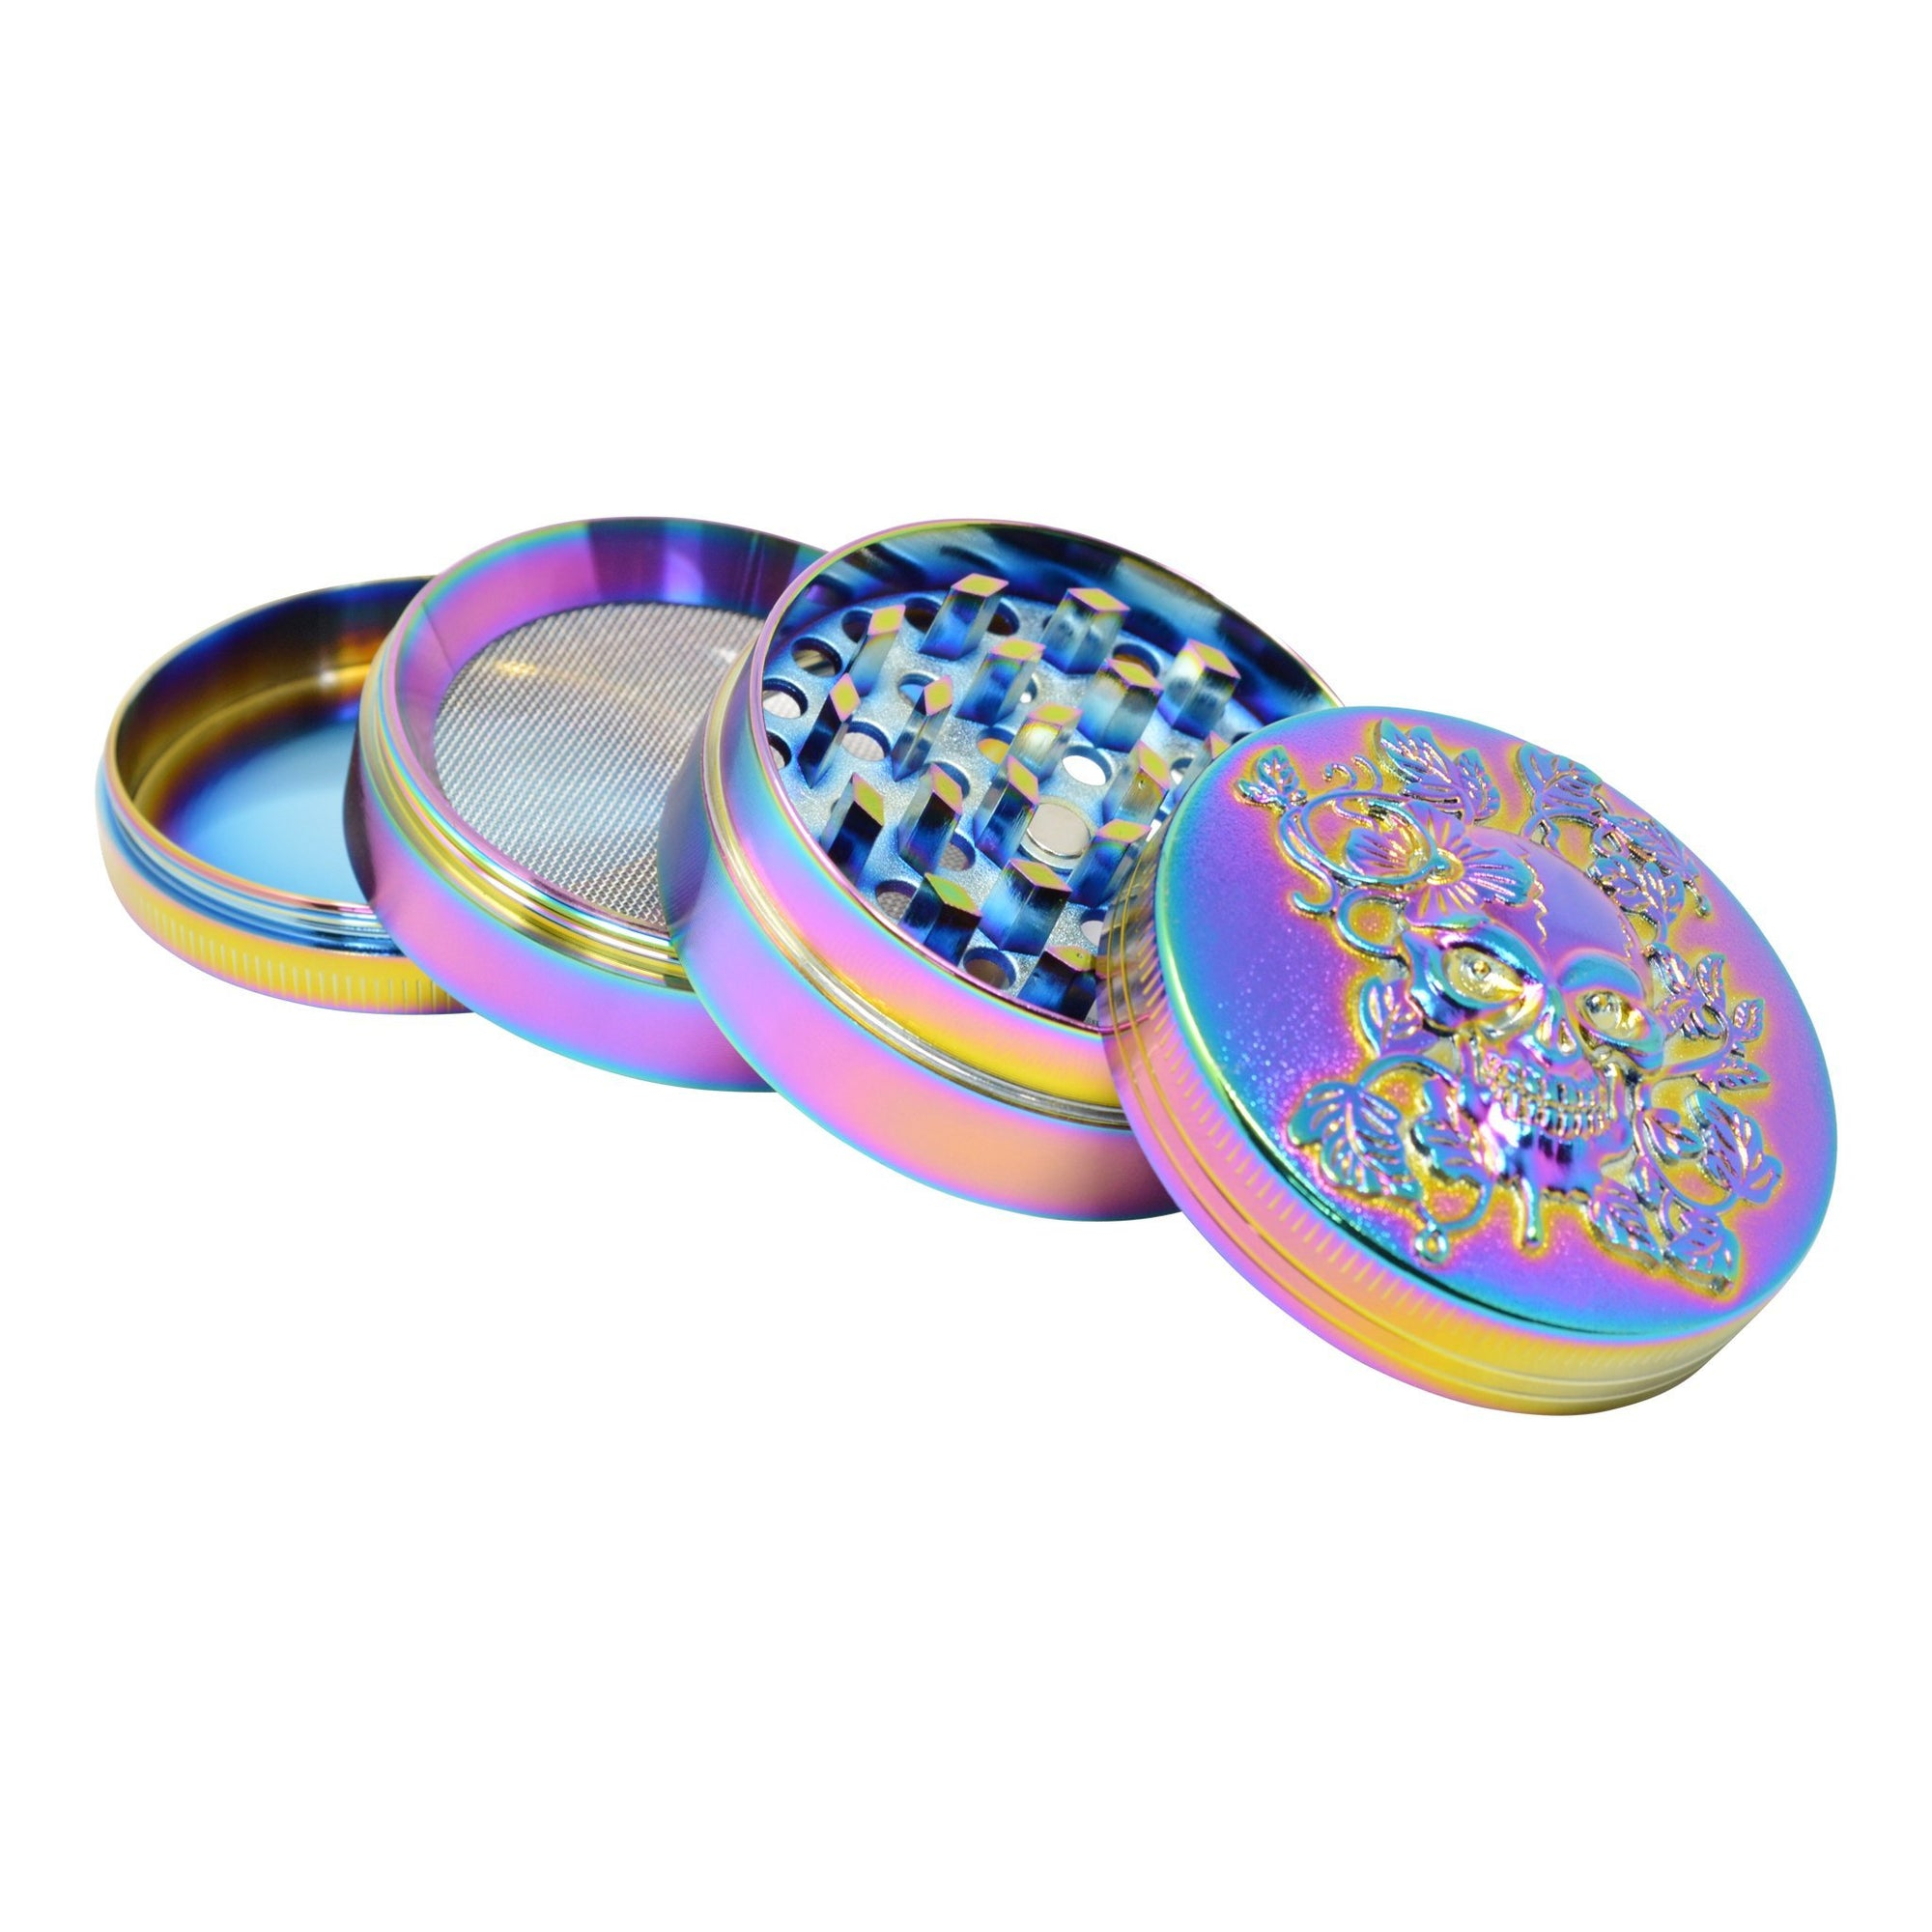 Full shot of 4 pieces shiny hologram rainbow colored 48mm metal grinder skull design